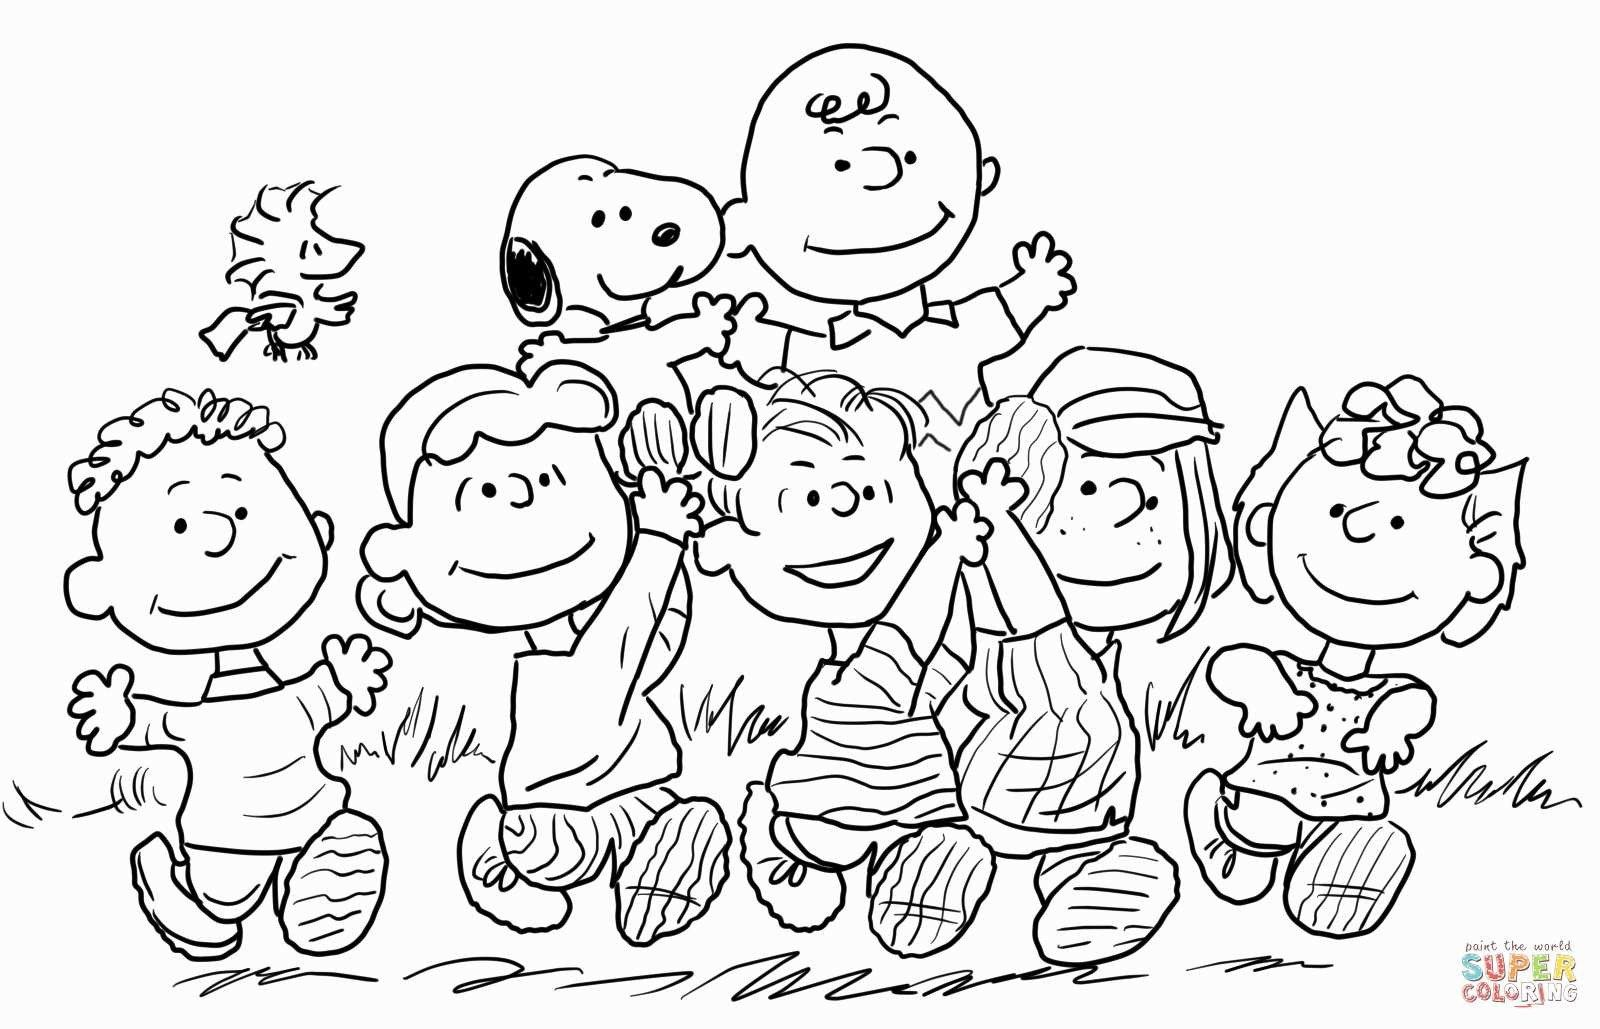 Charlie Brown Coloring Pages Luxury Coloring Ideas Snoopy Colorare Bello Peanuts Charac Snoopy Coloring Pages Halloween Coloring Pages Valentine Coloring Pages